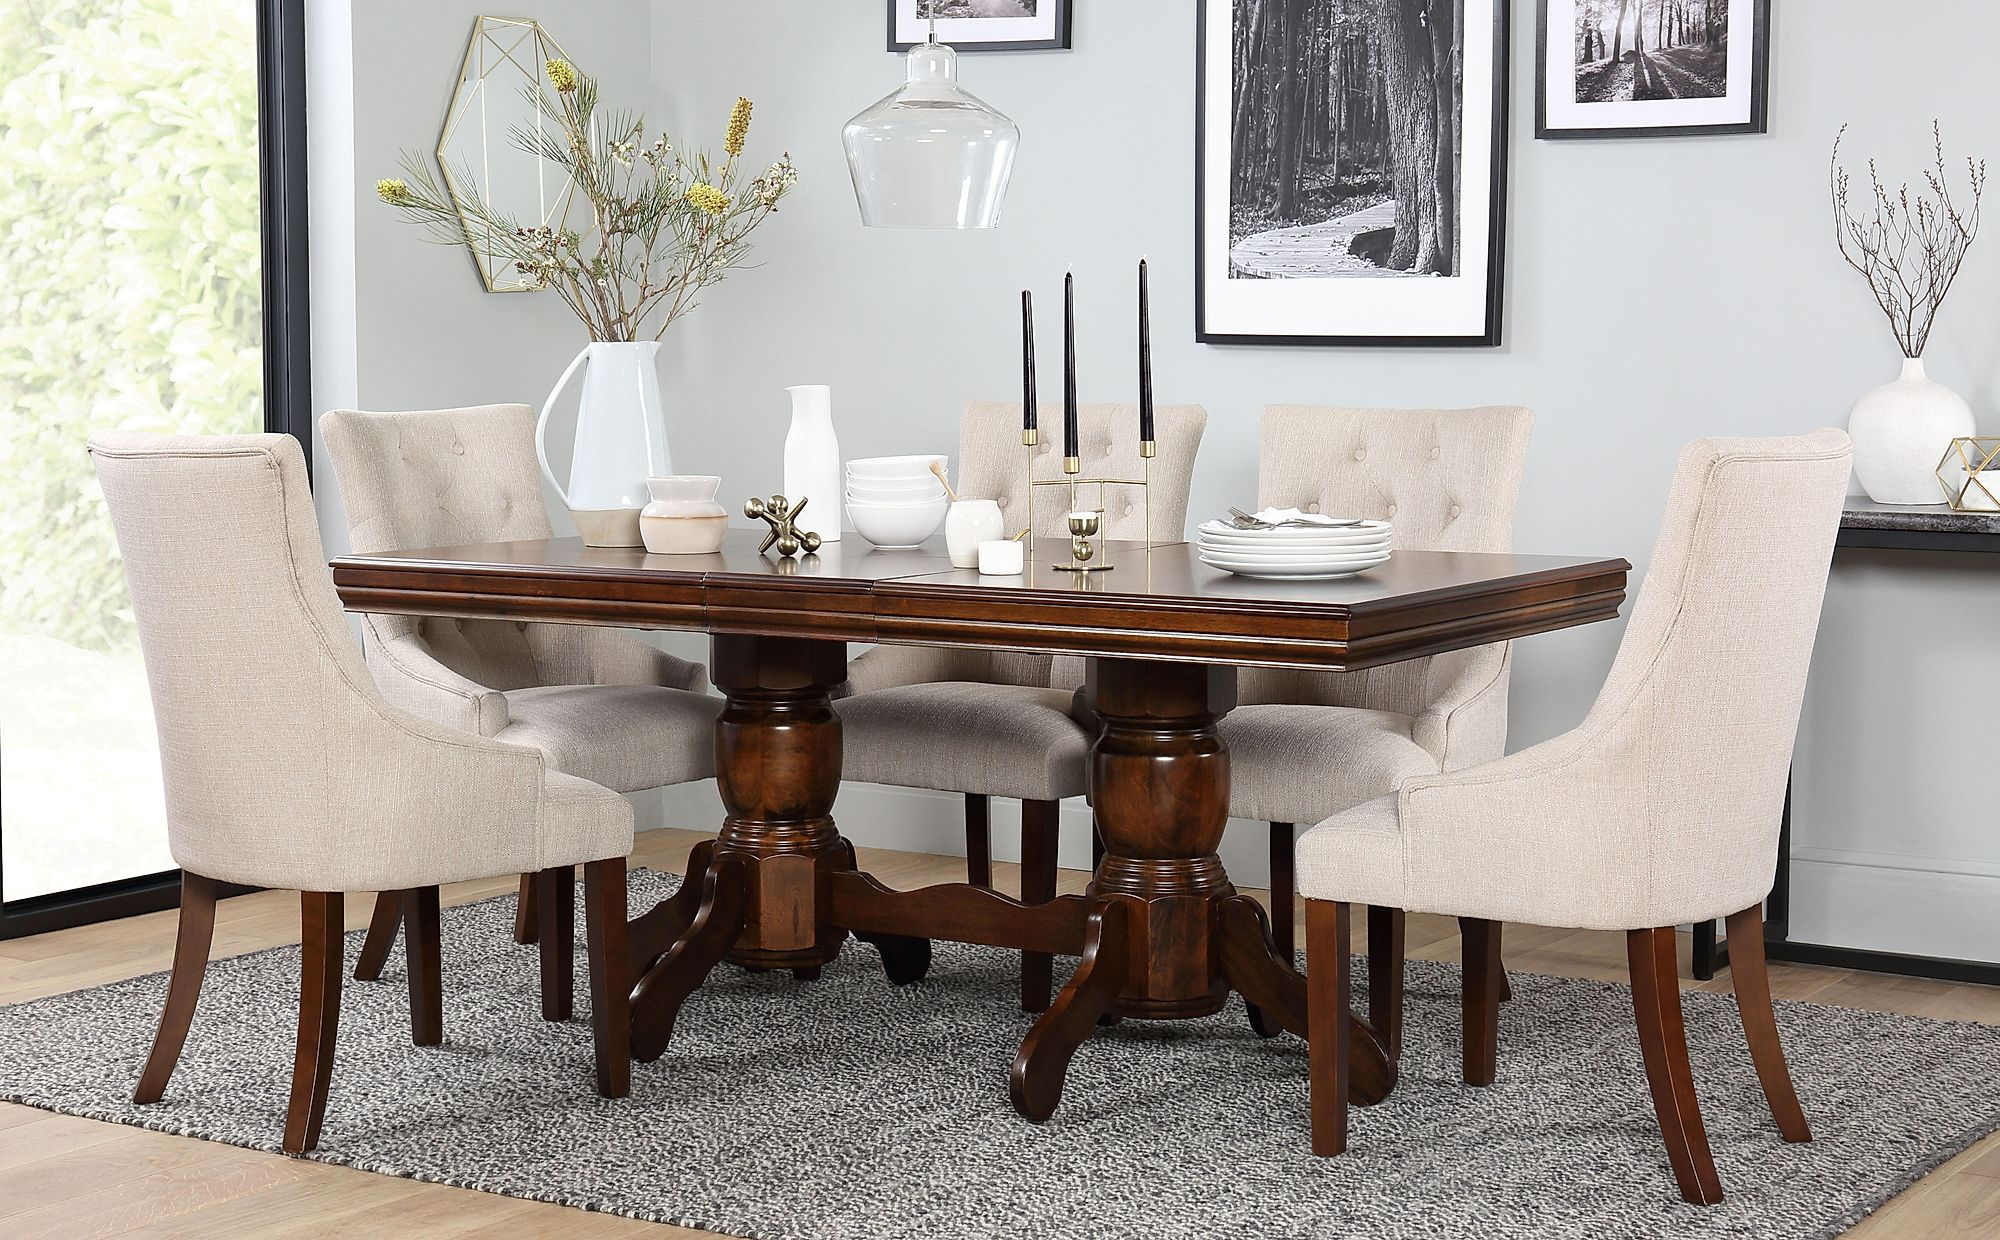 Miraculous Chatsworth Dark Wood Extending Dining Table With 6 Duke Oatmeal Chairs Onthecornerstone Fun Painted Chair Ideas Images Onthecornerstoneorg